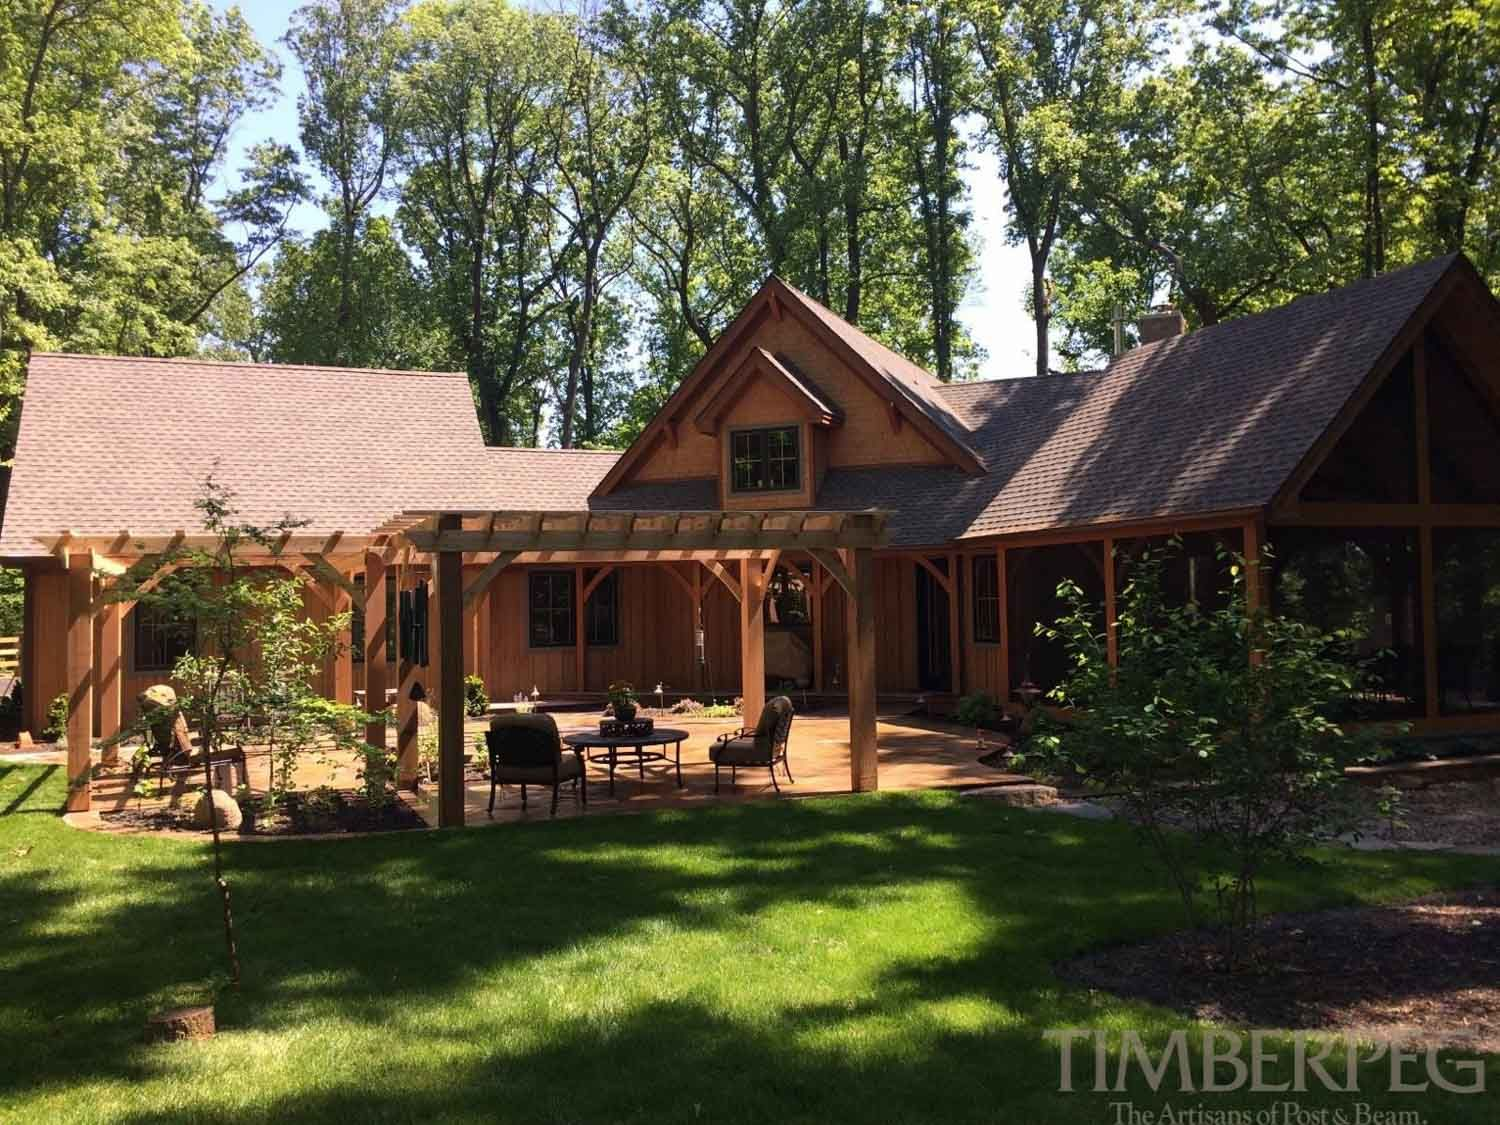 Timberpeg Timber Frame | Hamilton, VA Main House (T00990) | Post and ...